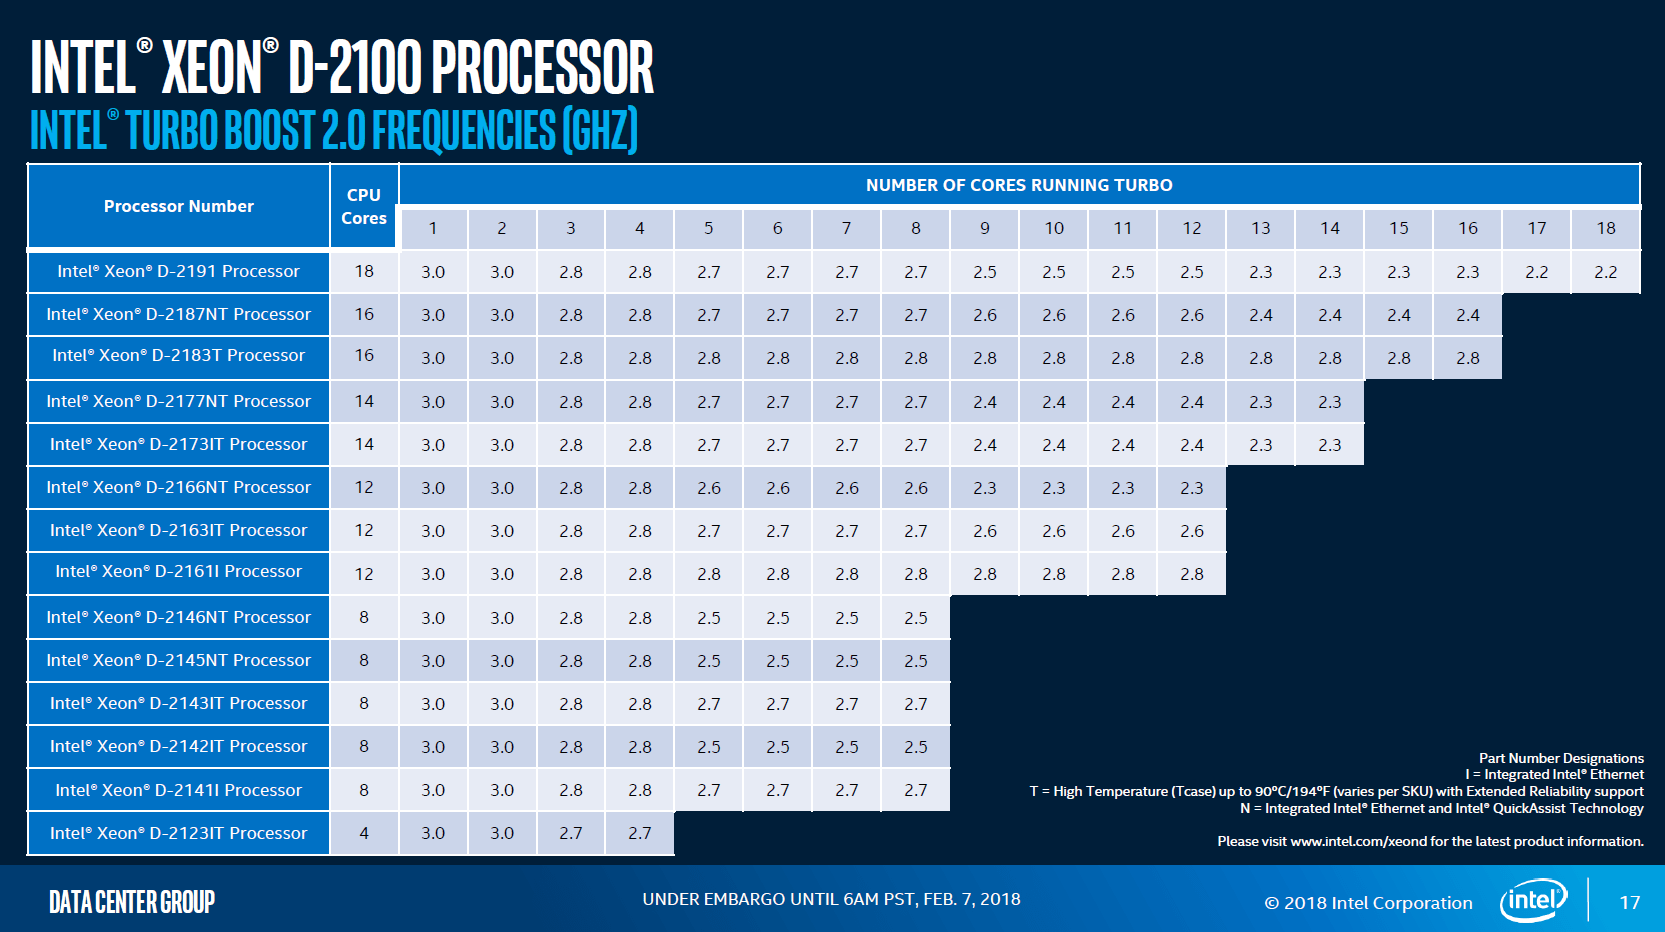 Intel Xeon D-2100 Taktraten mit Turbo